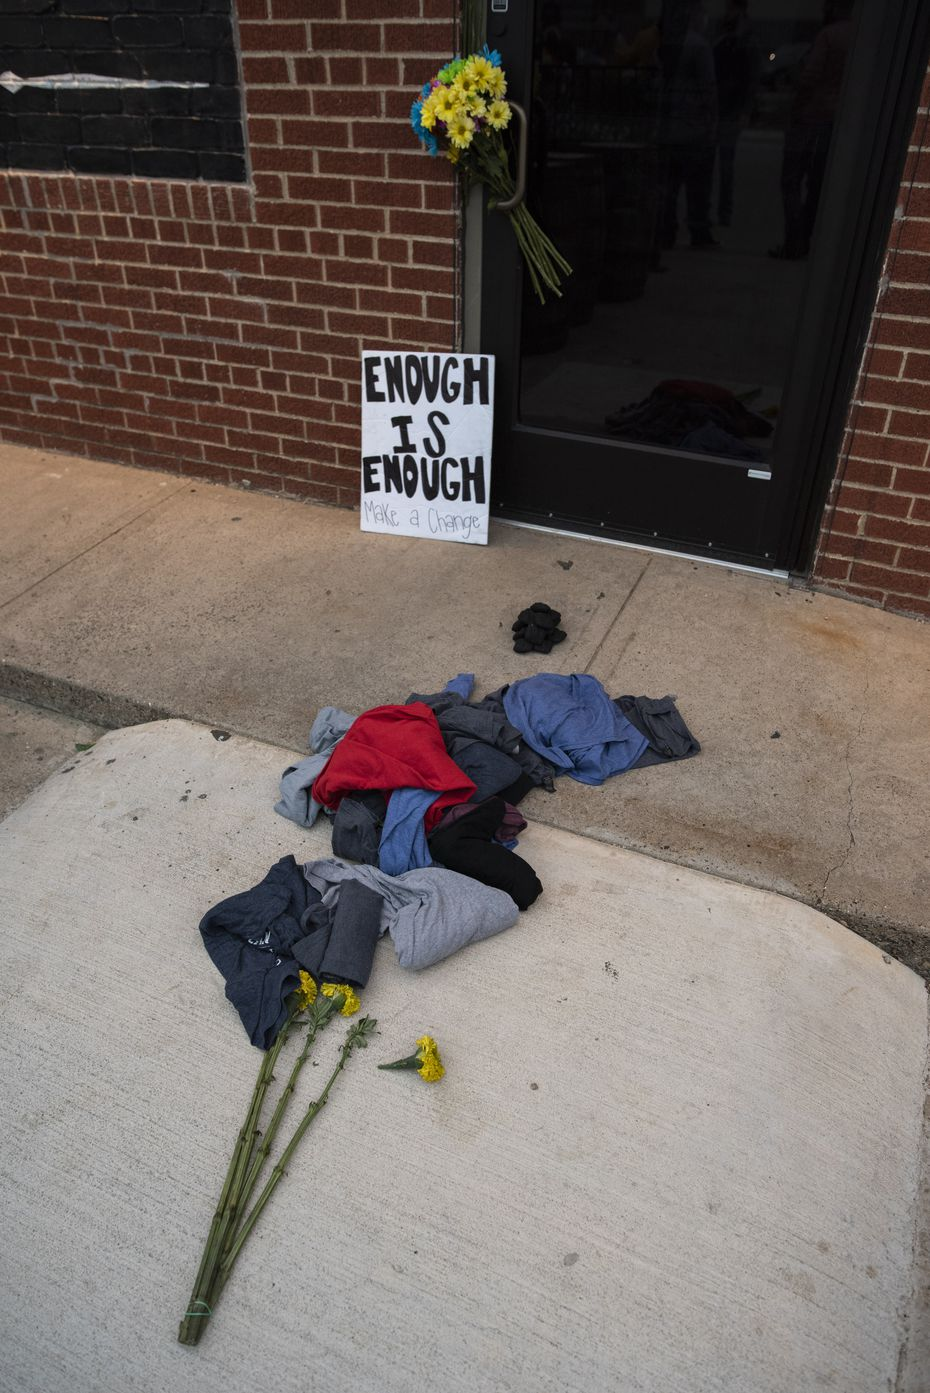 Piles of clothes, coal and flowers were placed outside the entrance to Redfield's Tavern in Dallas during a protest, on Saturday, Oct. 24, 2020.